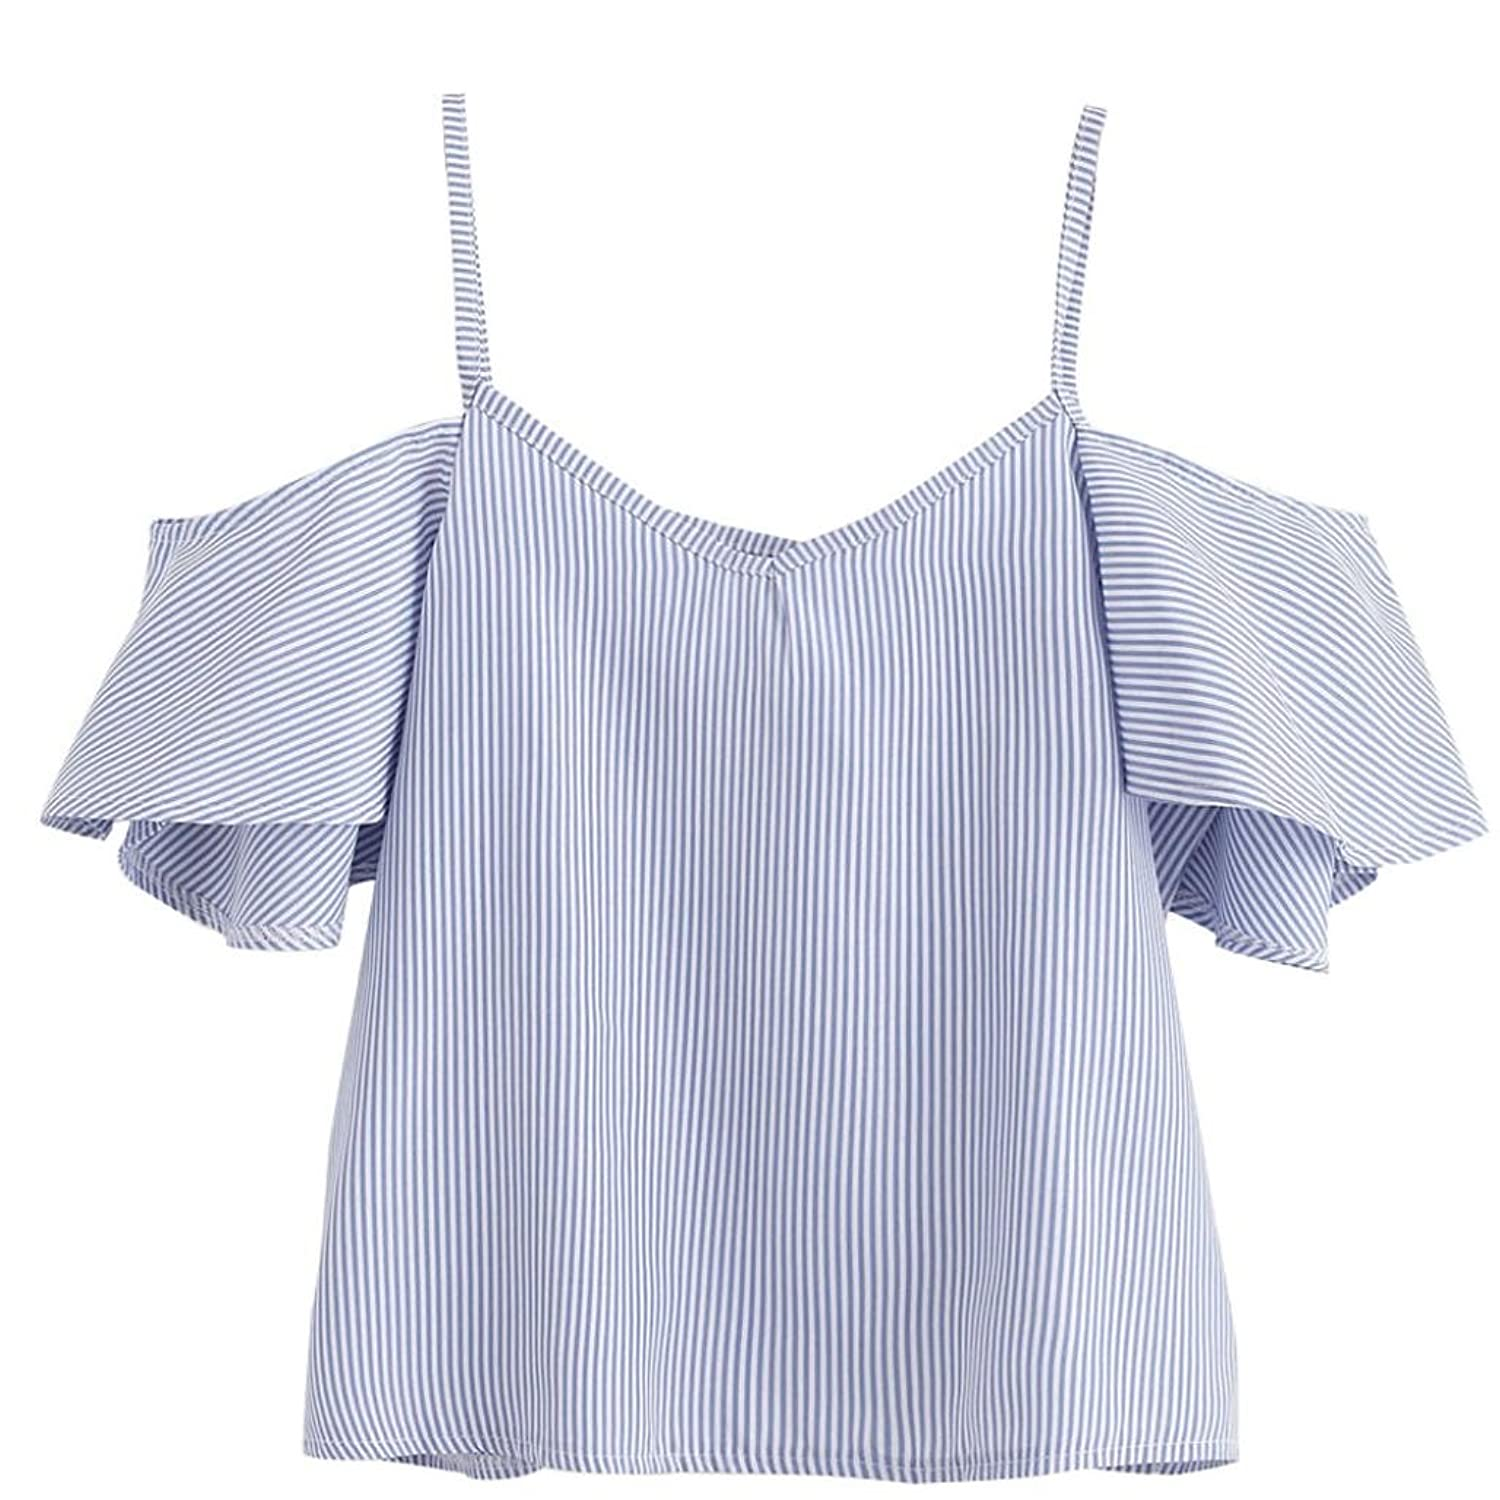 2018 Women Summer Pinstripe Blouse Cold Shoulder Top By Topunder At Jfashion Korean Style Double Layer Ivanka Amazon Womens Clothing Store